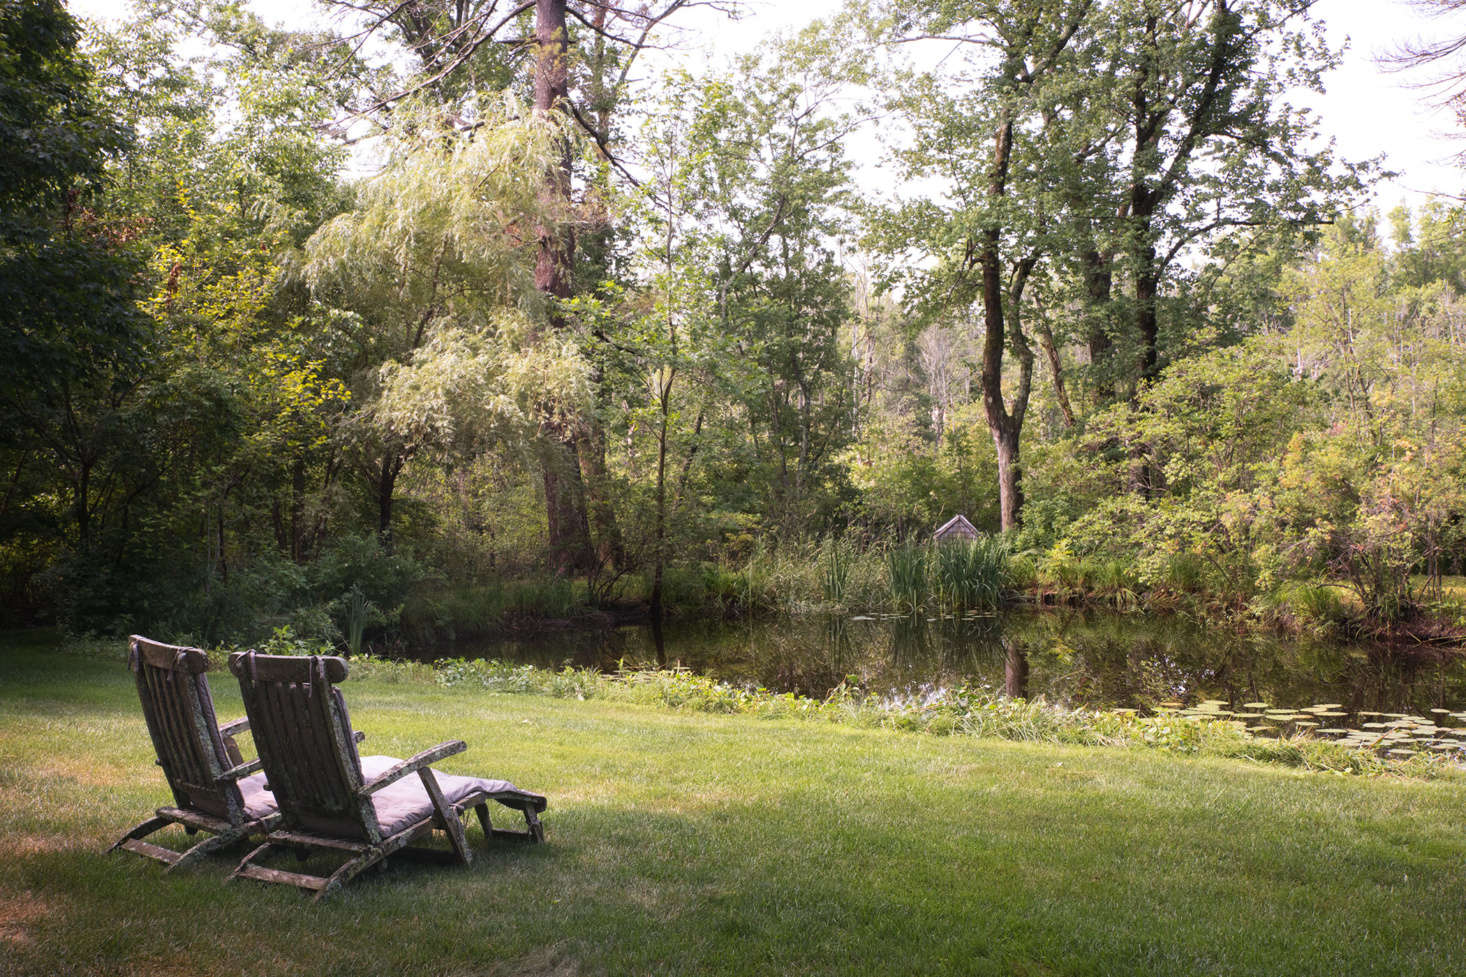 A paired of lichen-covered deck chairs provides a quiet spot to rest by the pond.